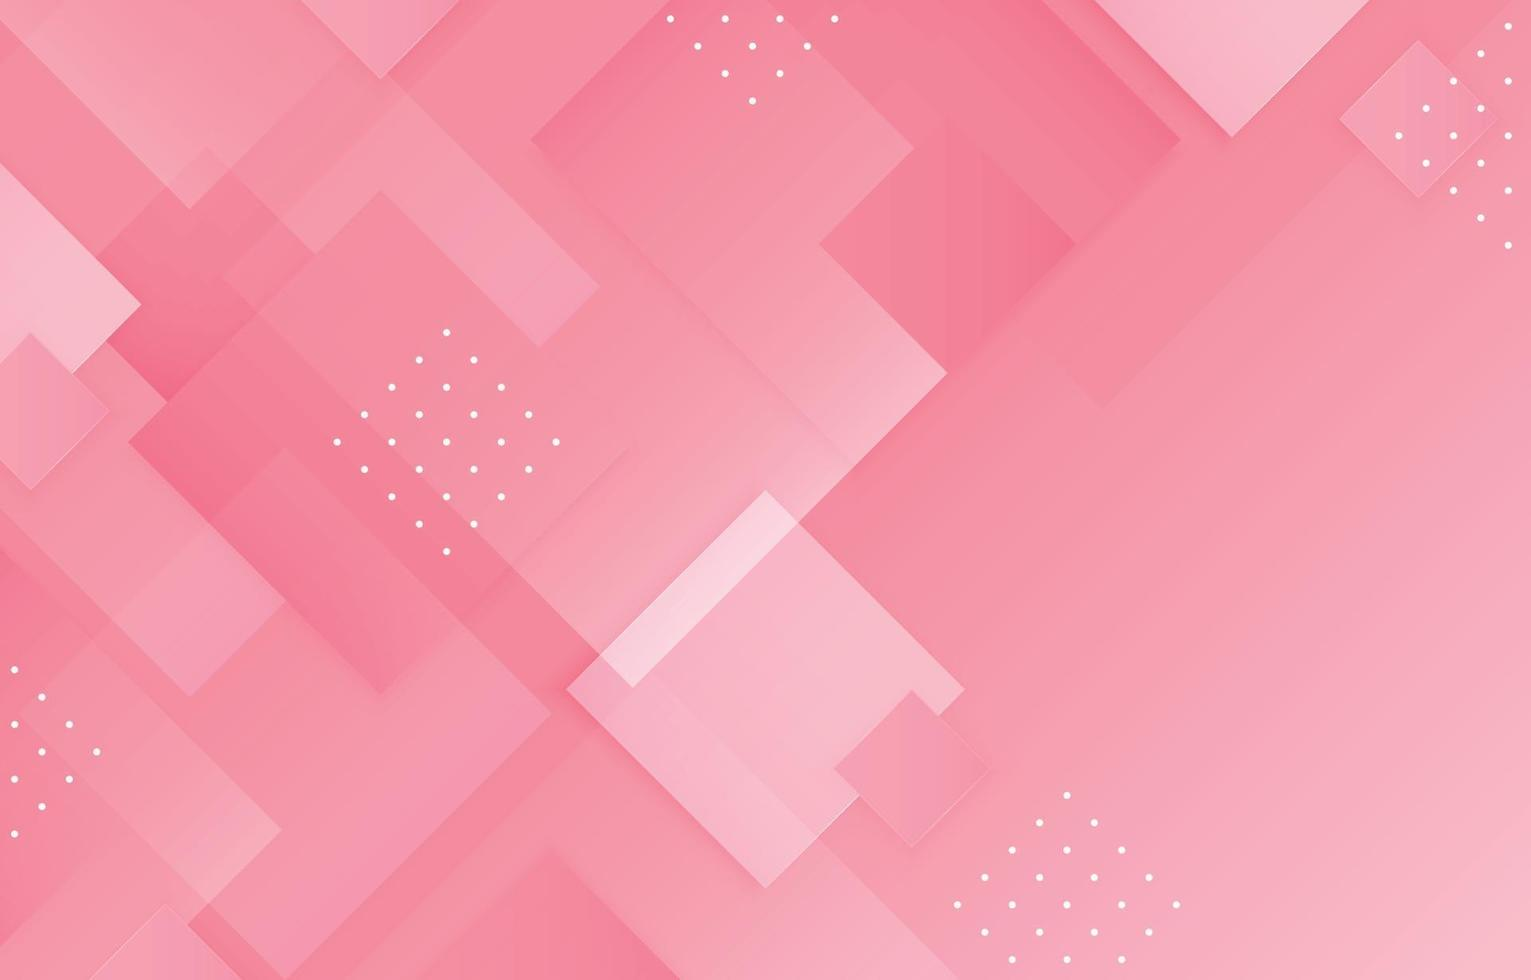 Abstract Rectangle Pink Background Concept vector